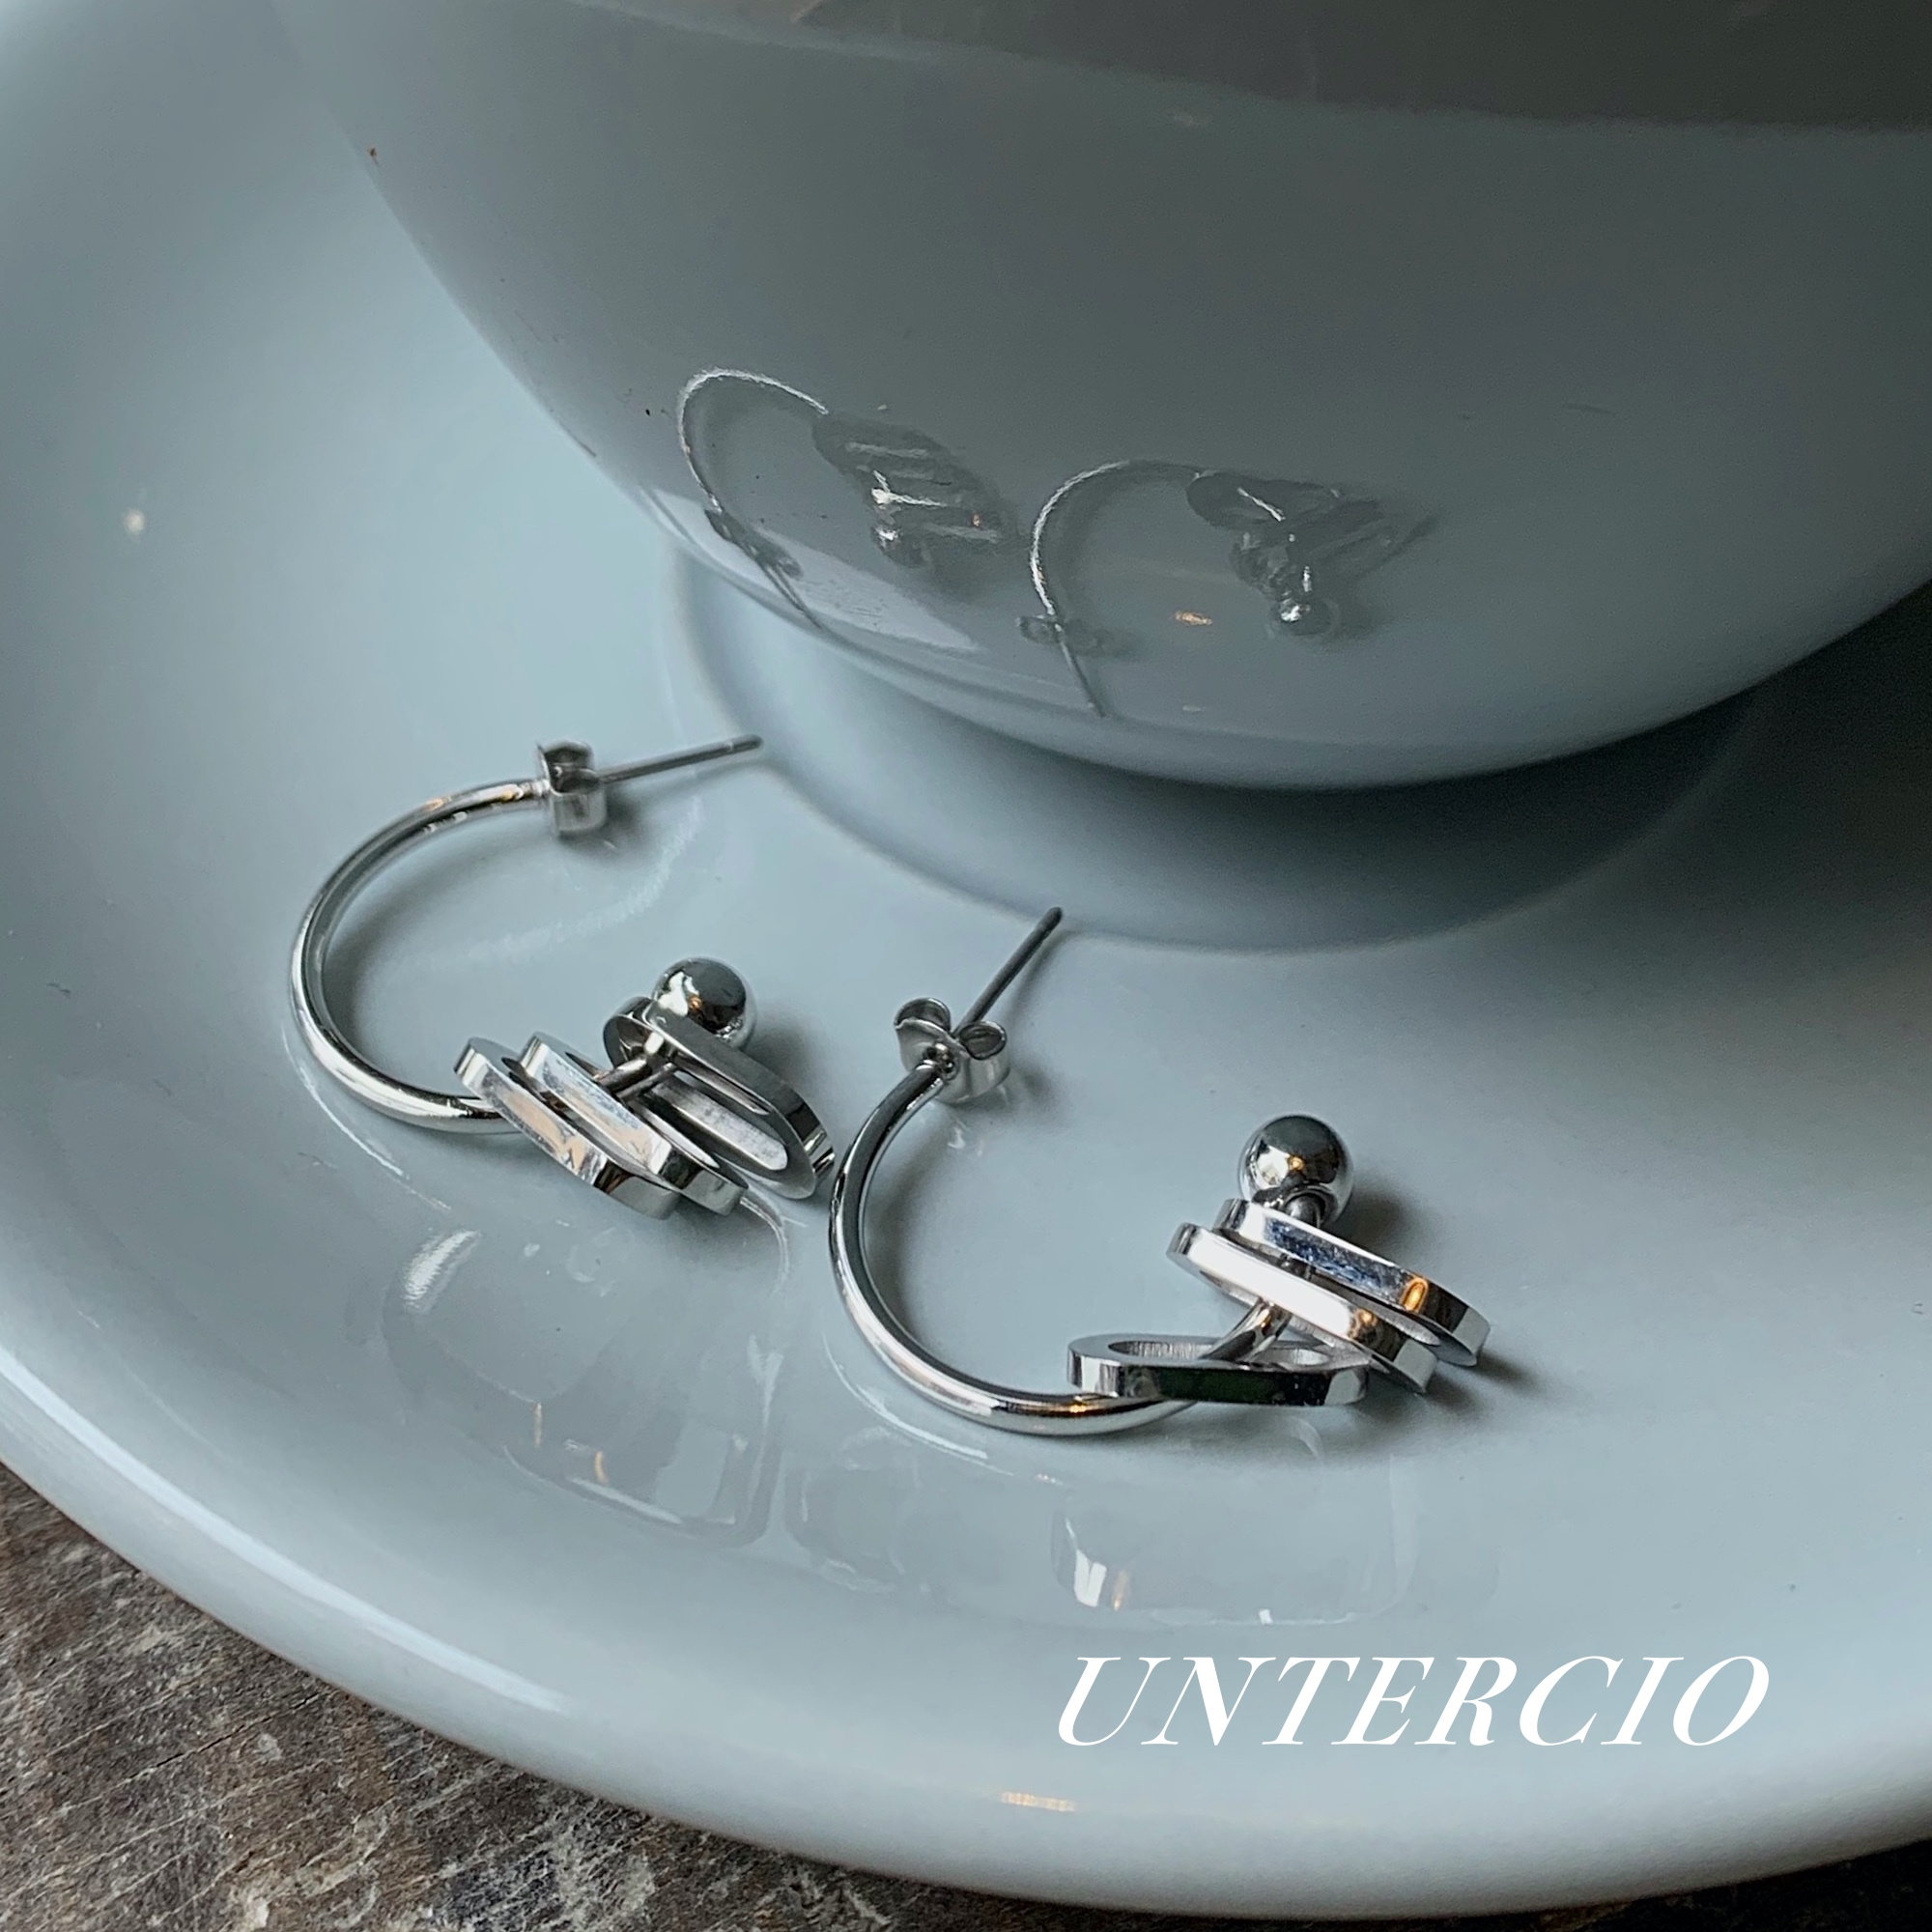 Untercio justice earrings silver metal rings chic multi-layer niche cool wind ins Fashion Earrings